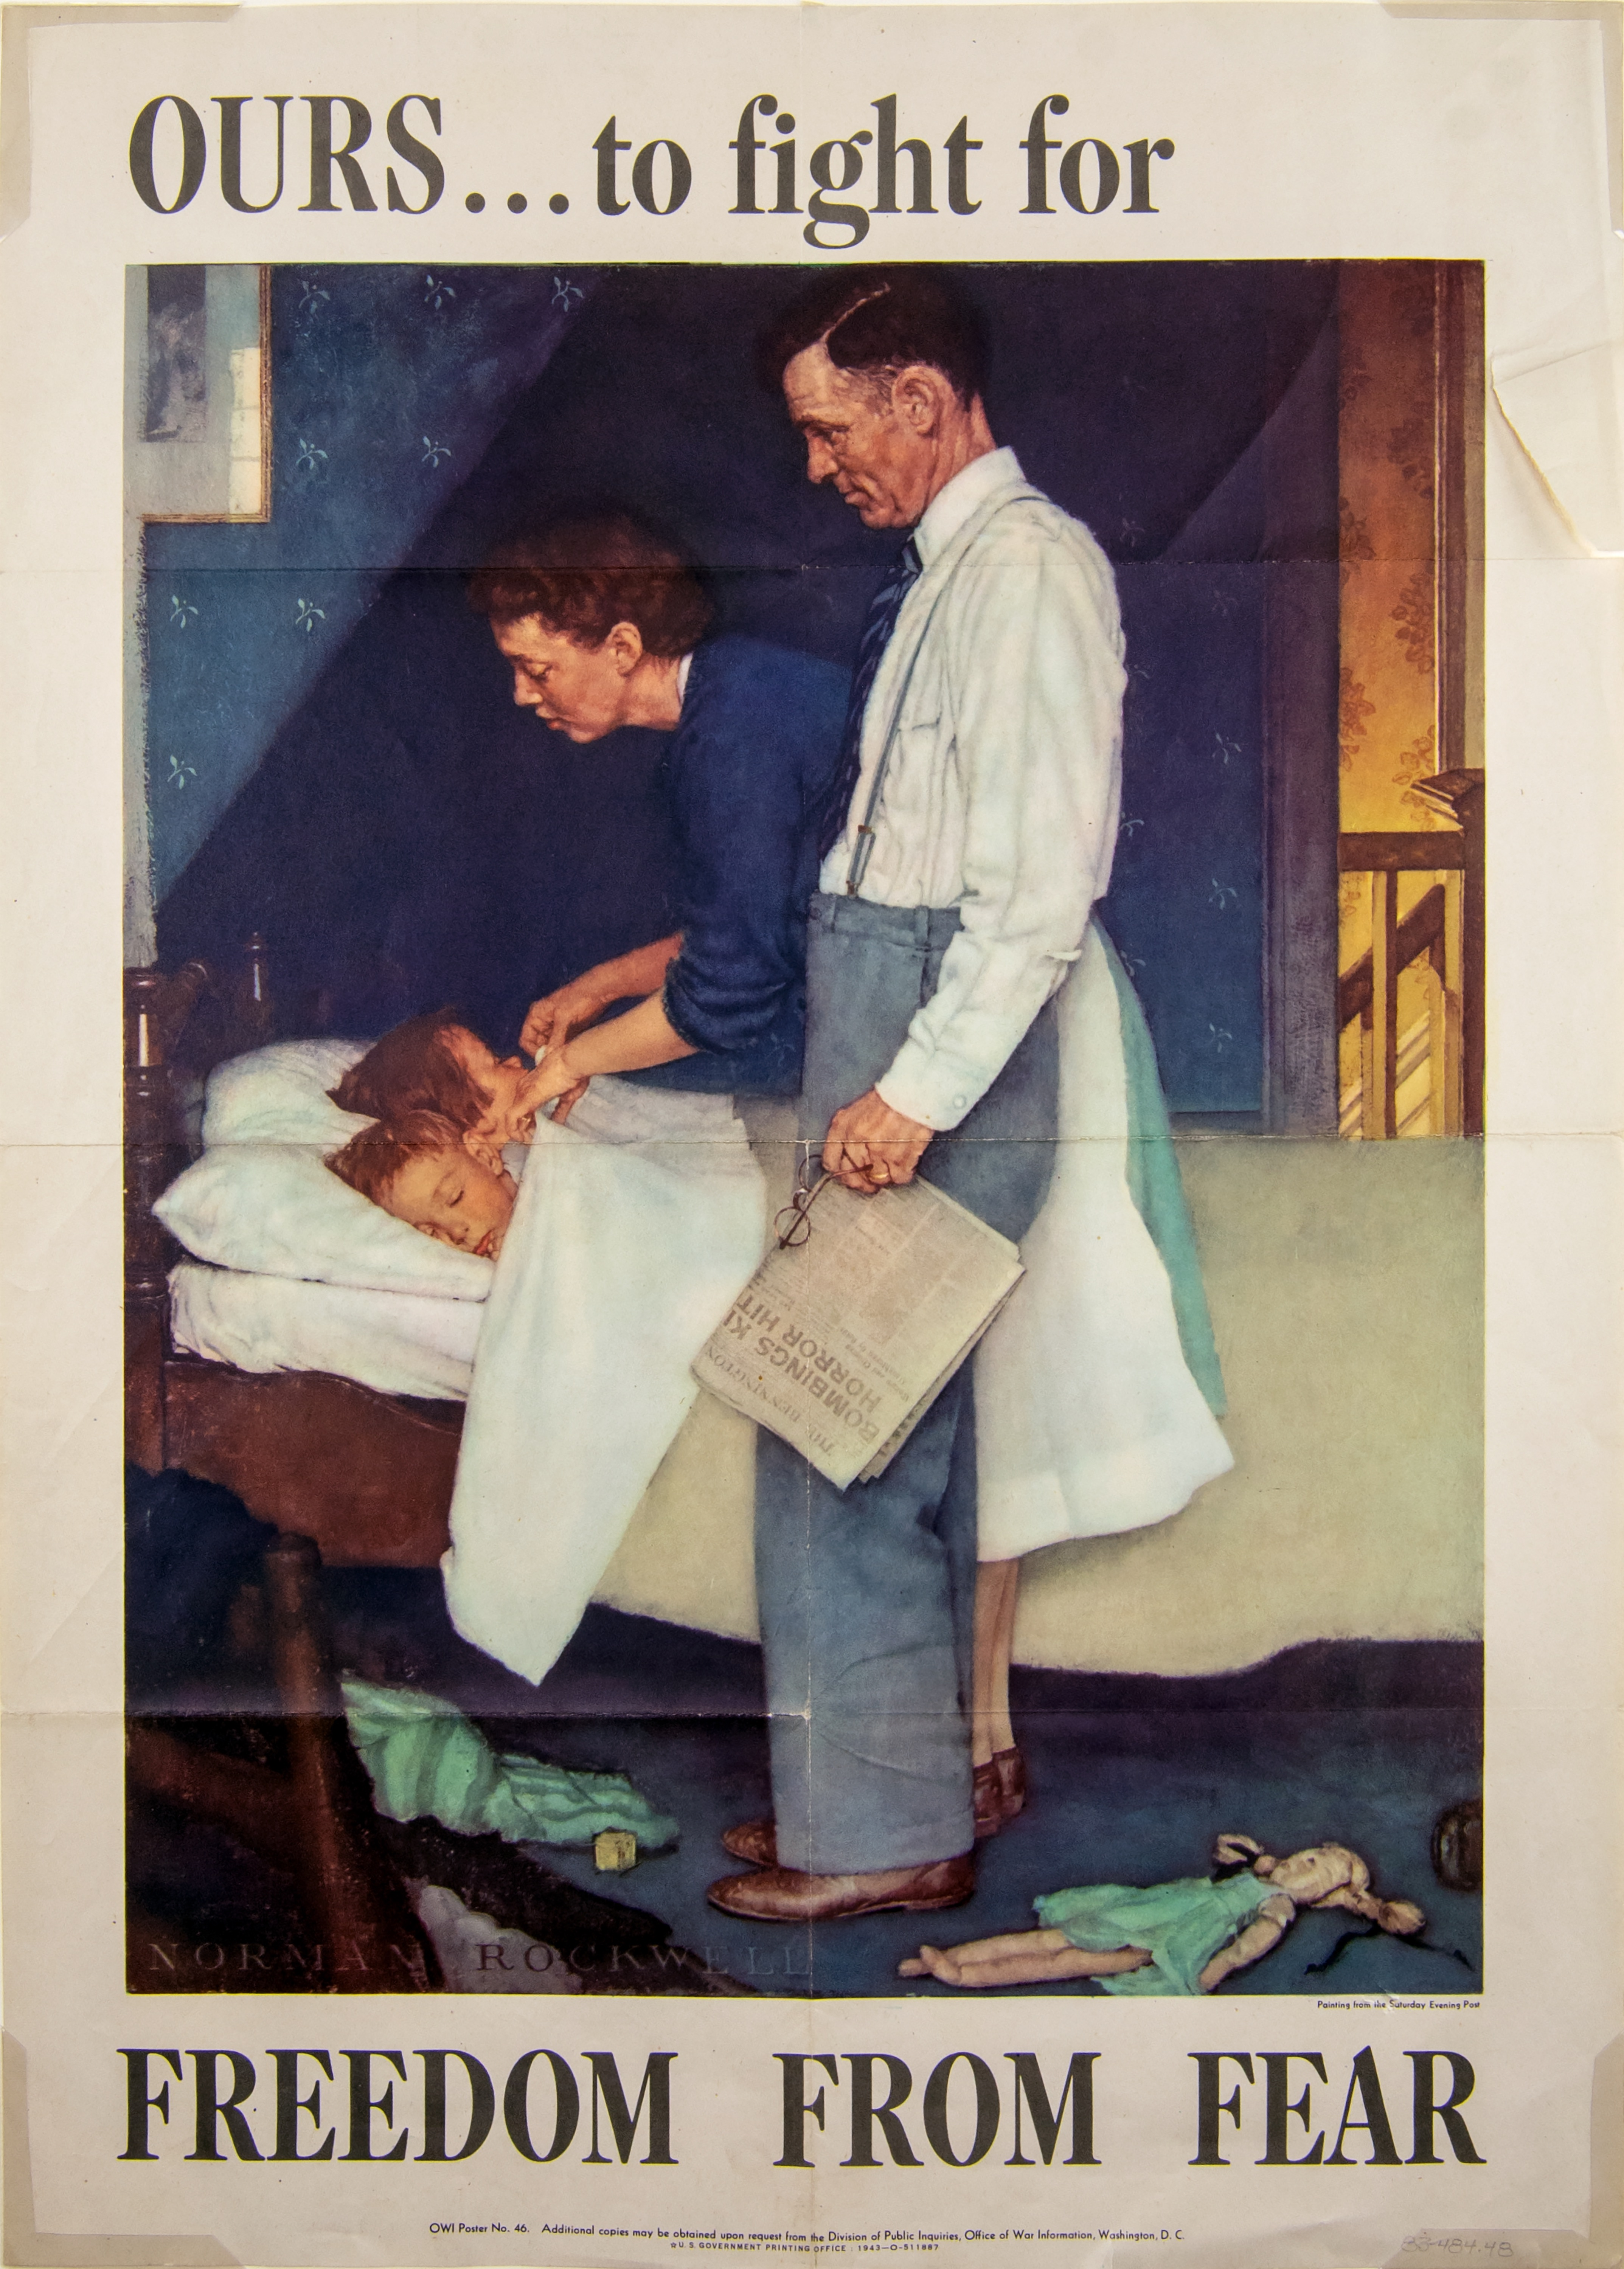 Image of a poster by Norman Rockwell. In this image, Rockwell portrays freedom from fear by showing a man and woman tucking two children into bed. One child is laying with its eyes closed, the other is having the blanket tucked in around its shoulders by the woman. The man stands over the bed, looking down at the children. In his hands, he is holding a newspaper and a pair of eyeglasses. He is dressed in business attire, with leather shoes, trousers with suspenders, a white dress shirt, and a necktie.